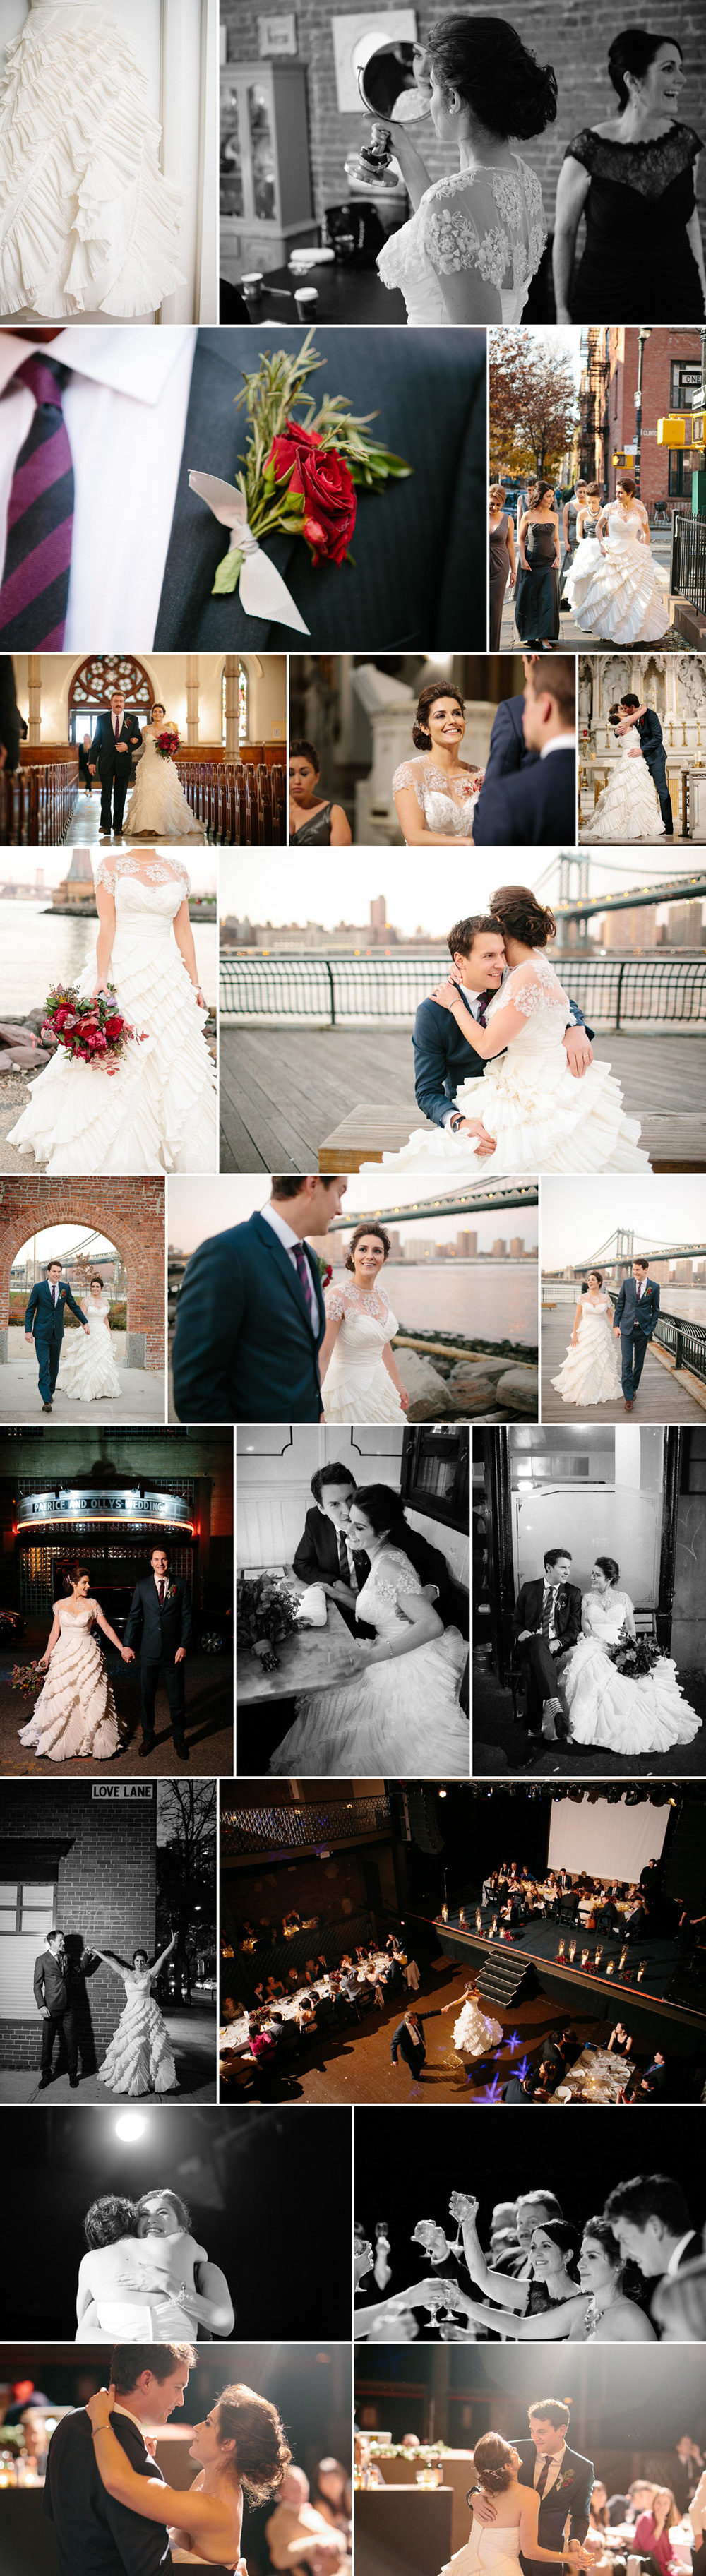 Collage-Music-Hall-Of-Williamsburg-Brooklyn-Wedding.jpg